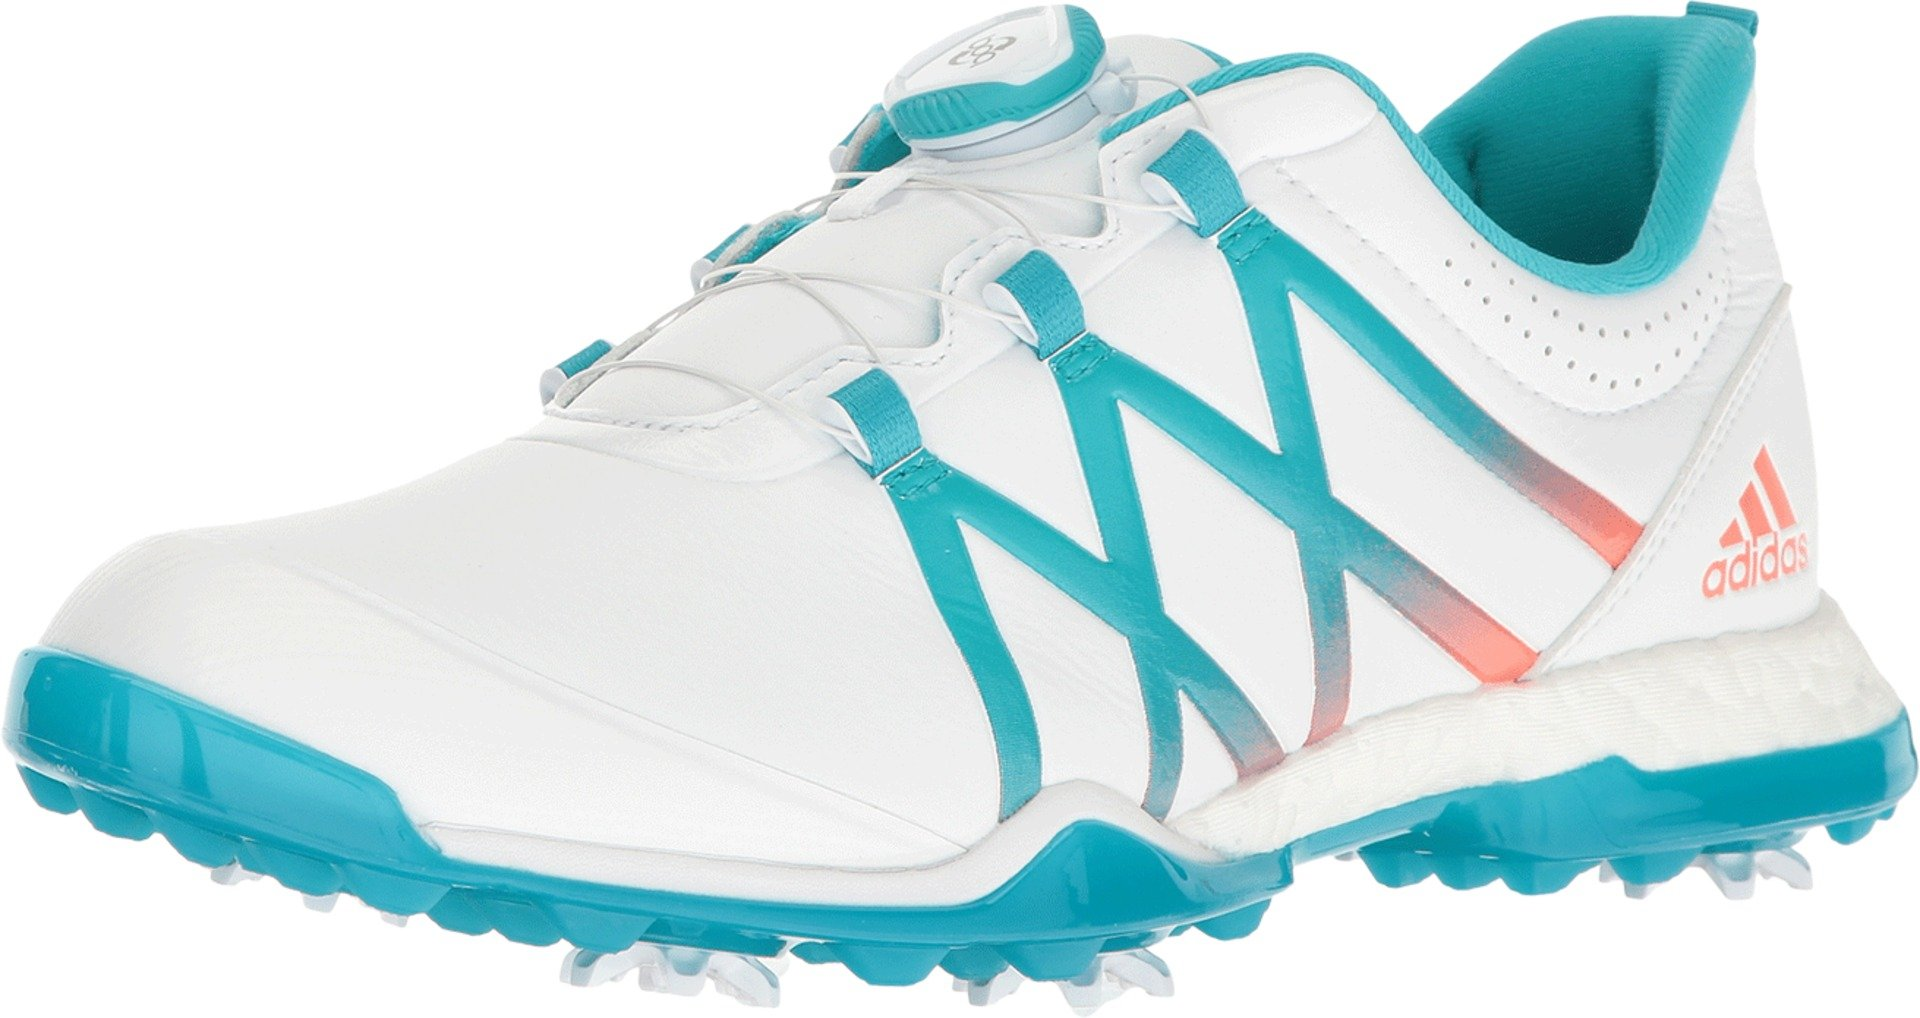 adidas Women's Adipower Boost BOA Golf Shoes, Ftwr White/Energy Blue/Easy Coral, 8 M US